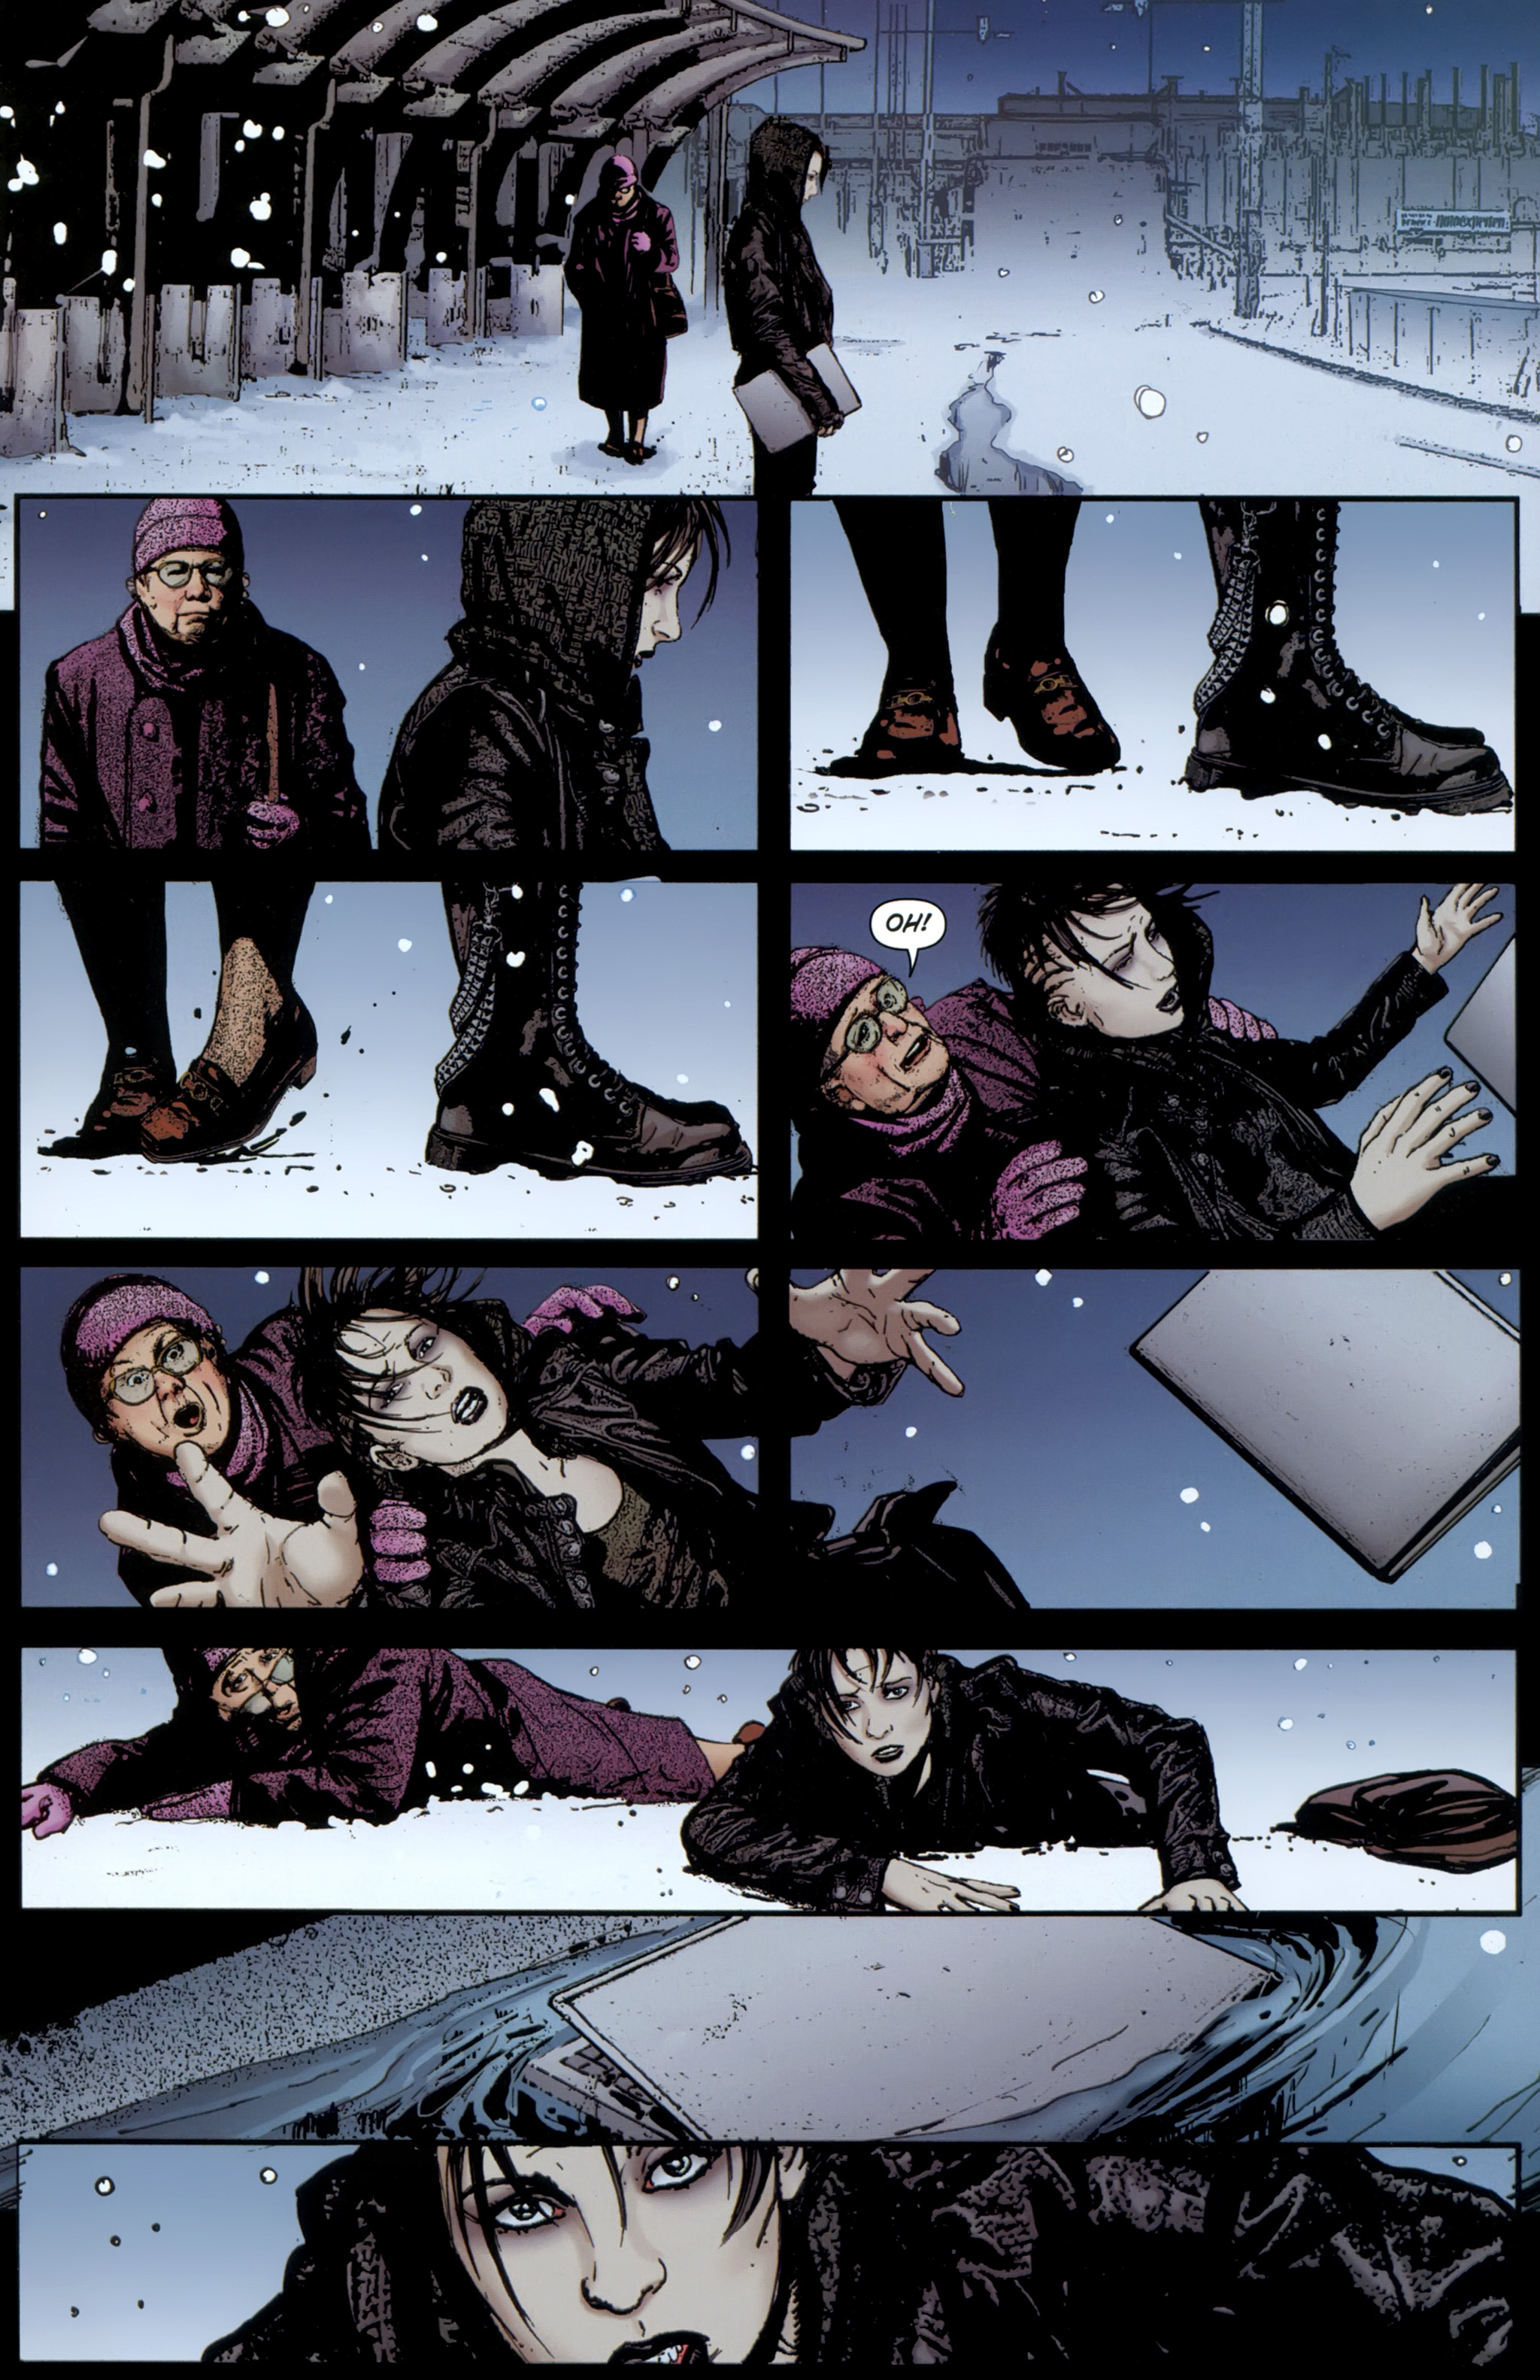 Read online The Girl With the Dragon Tattoo comic -  Issue # TPB 1 - 96